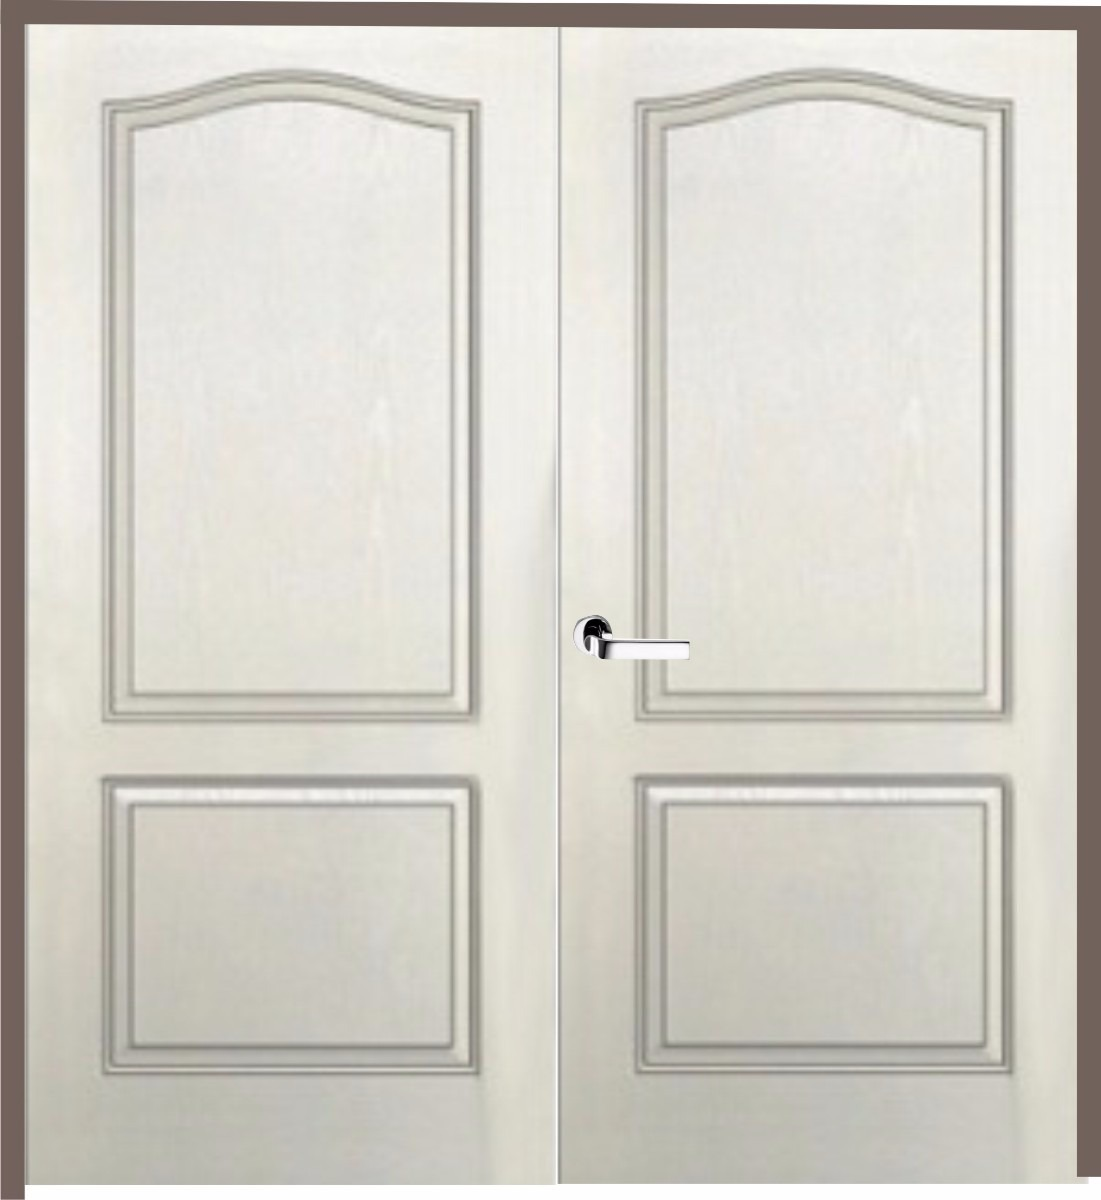 Puerta Doble Hoja Craftmaster Blanca Marco Madera 160x200 Cm ...